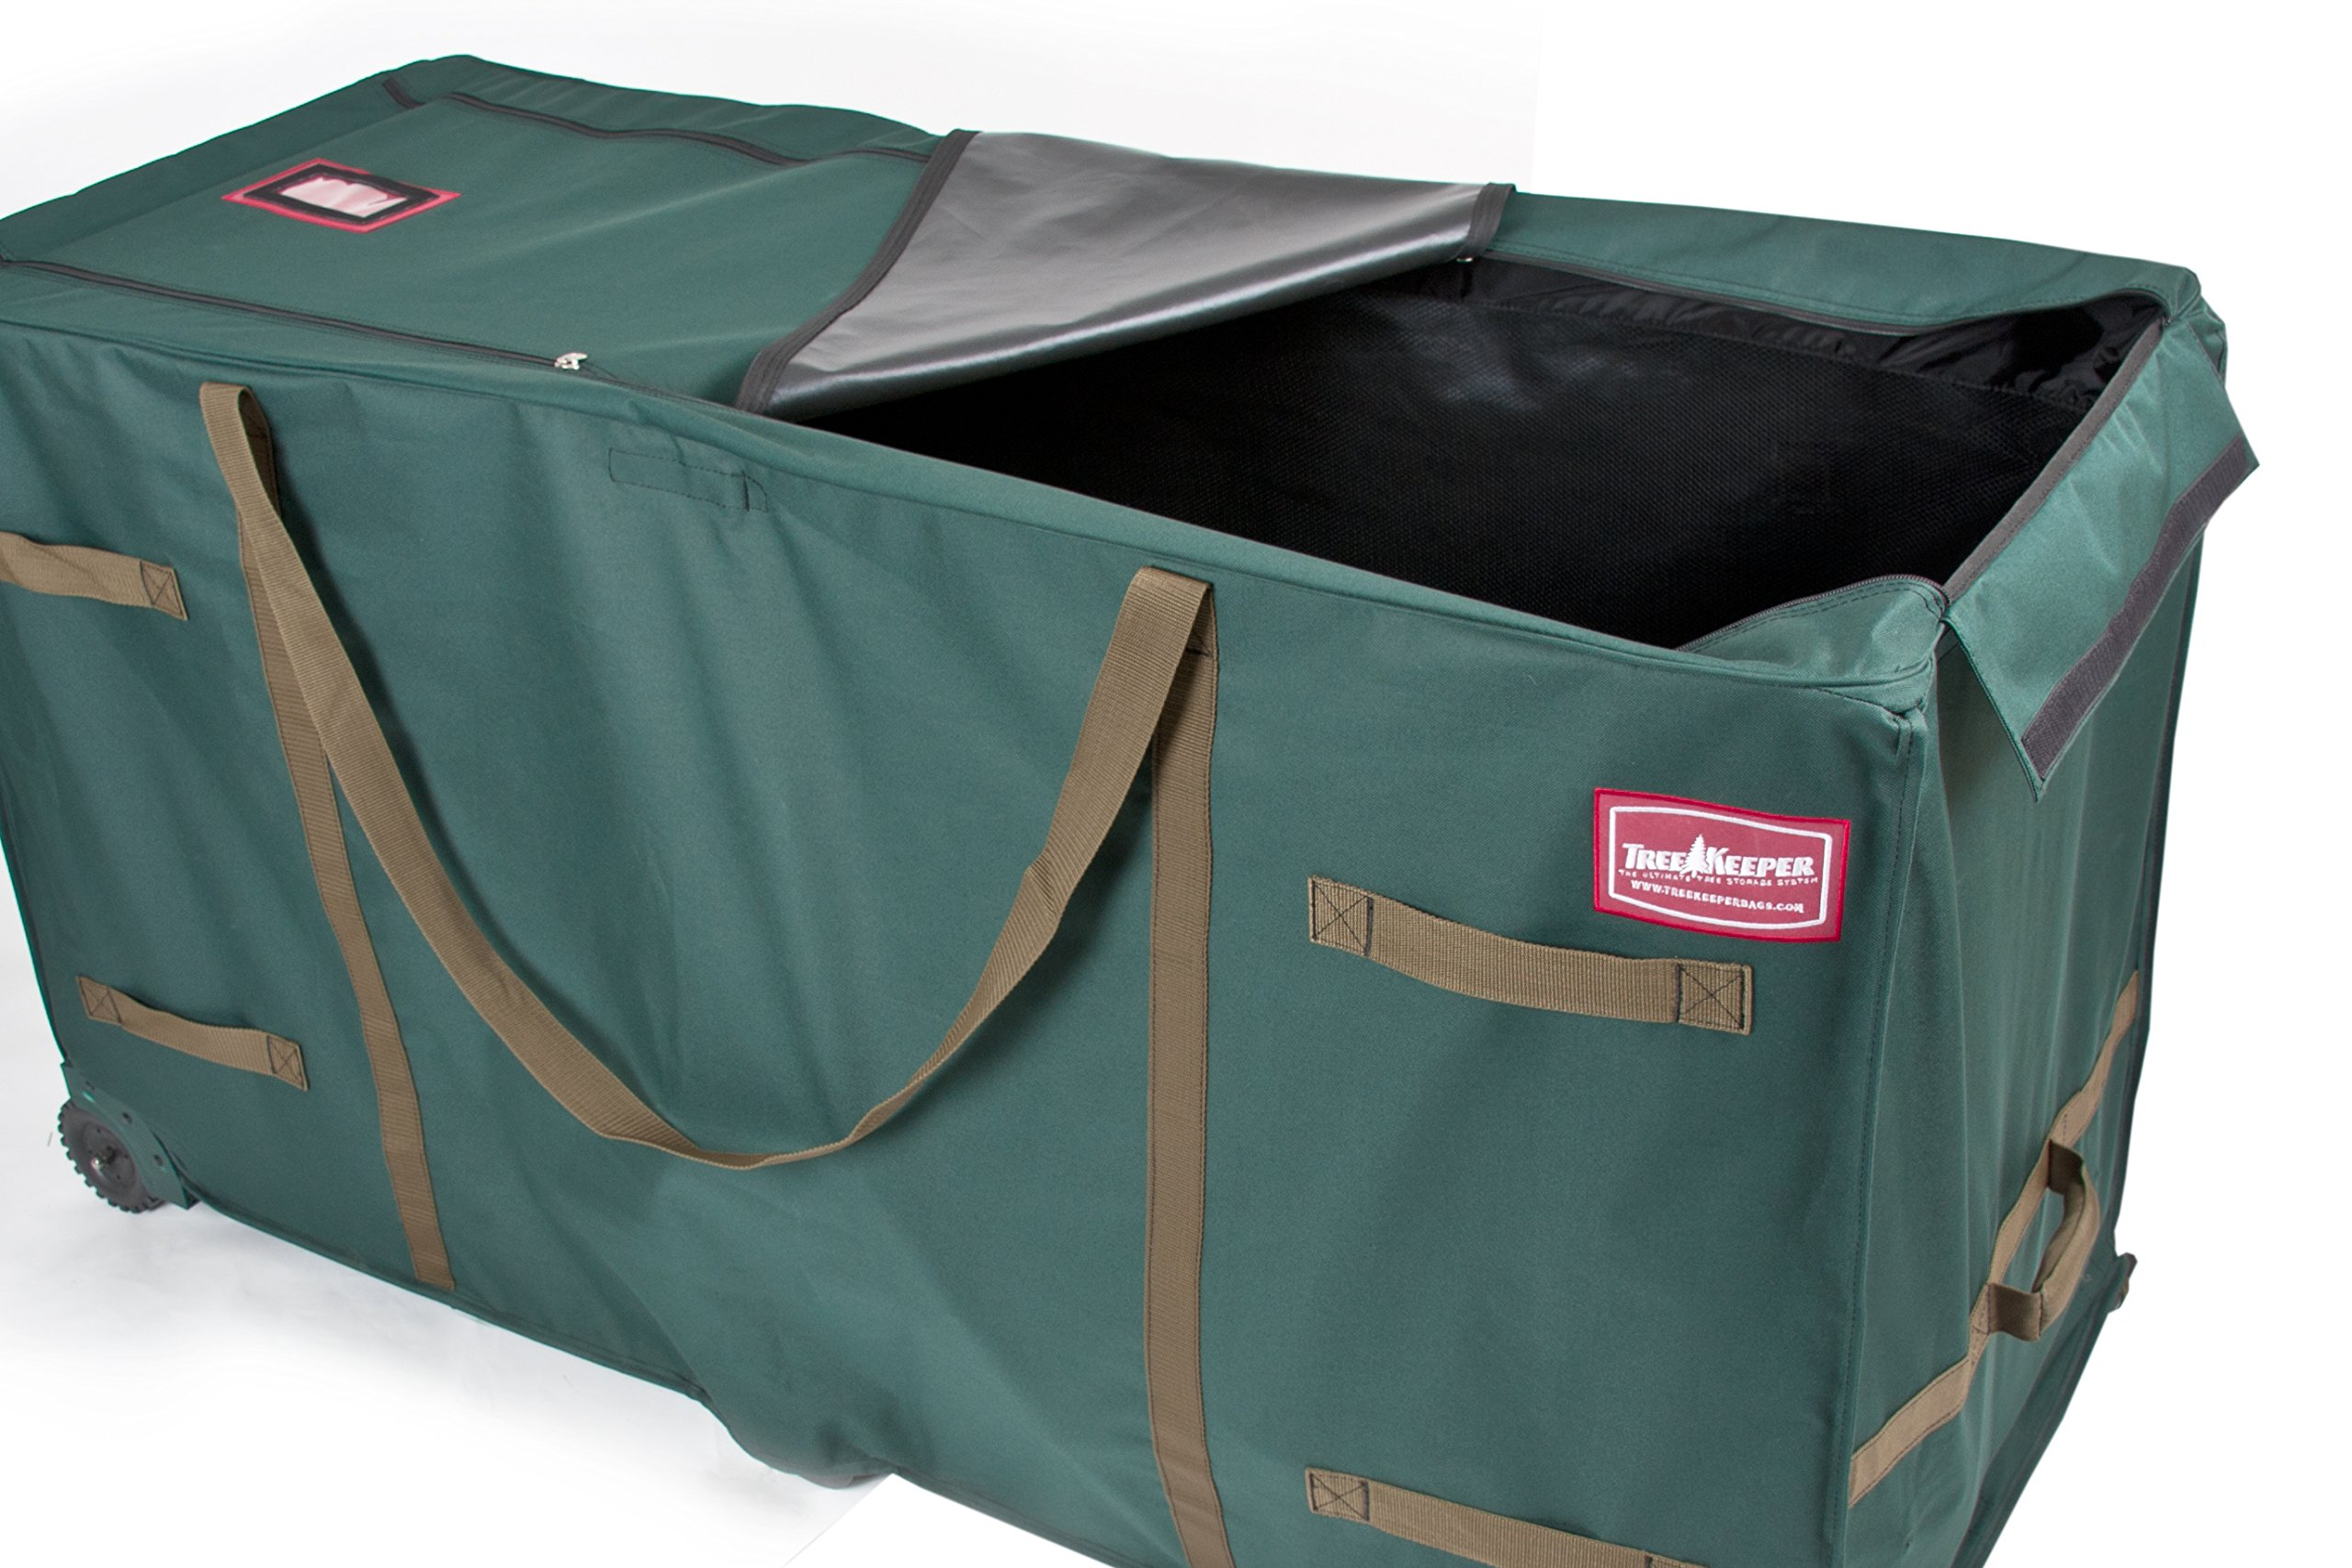 TreeKeeper GreensKeeper Storage Bag Fits 10-15' Trees with additional room!